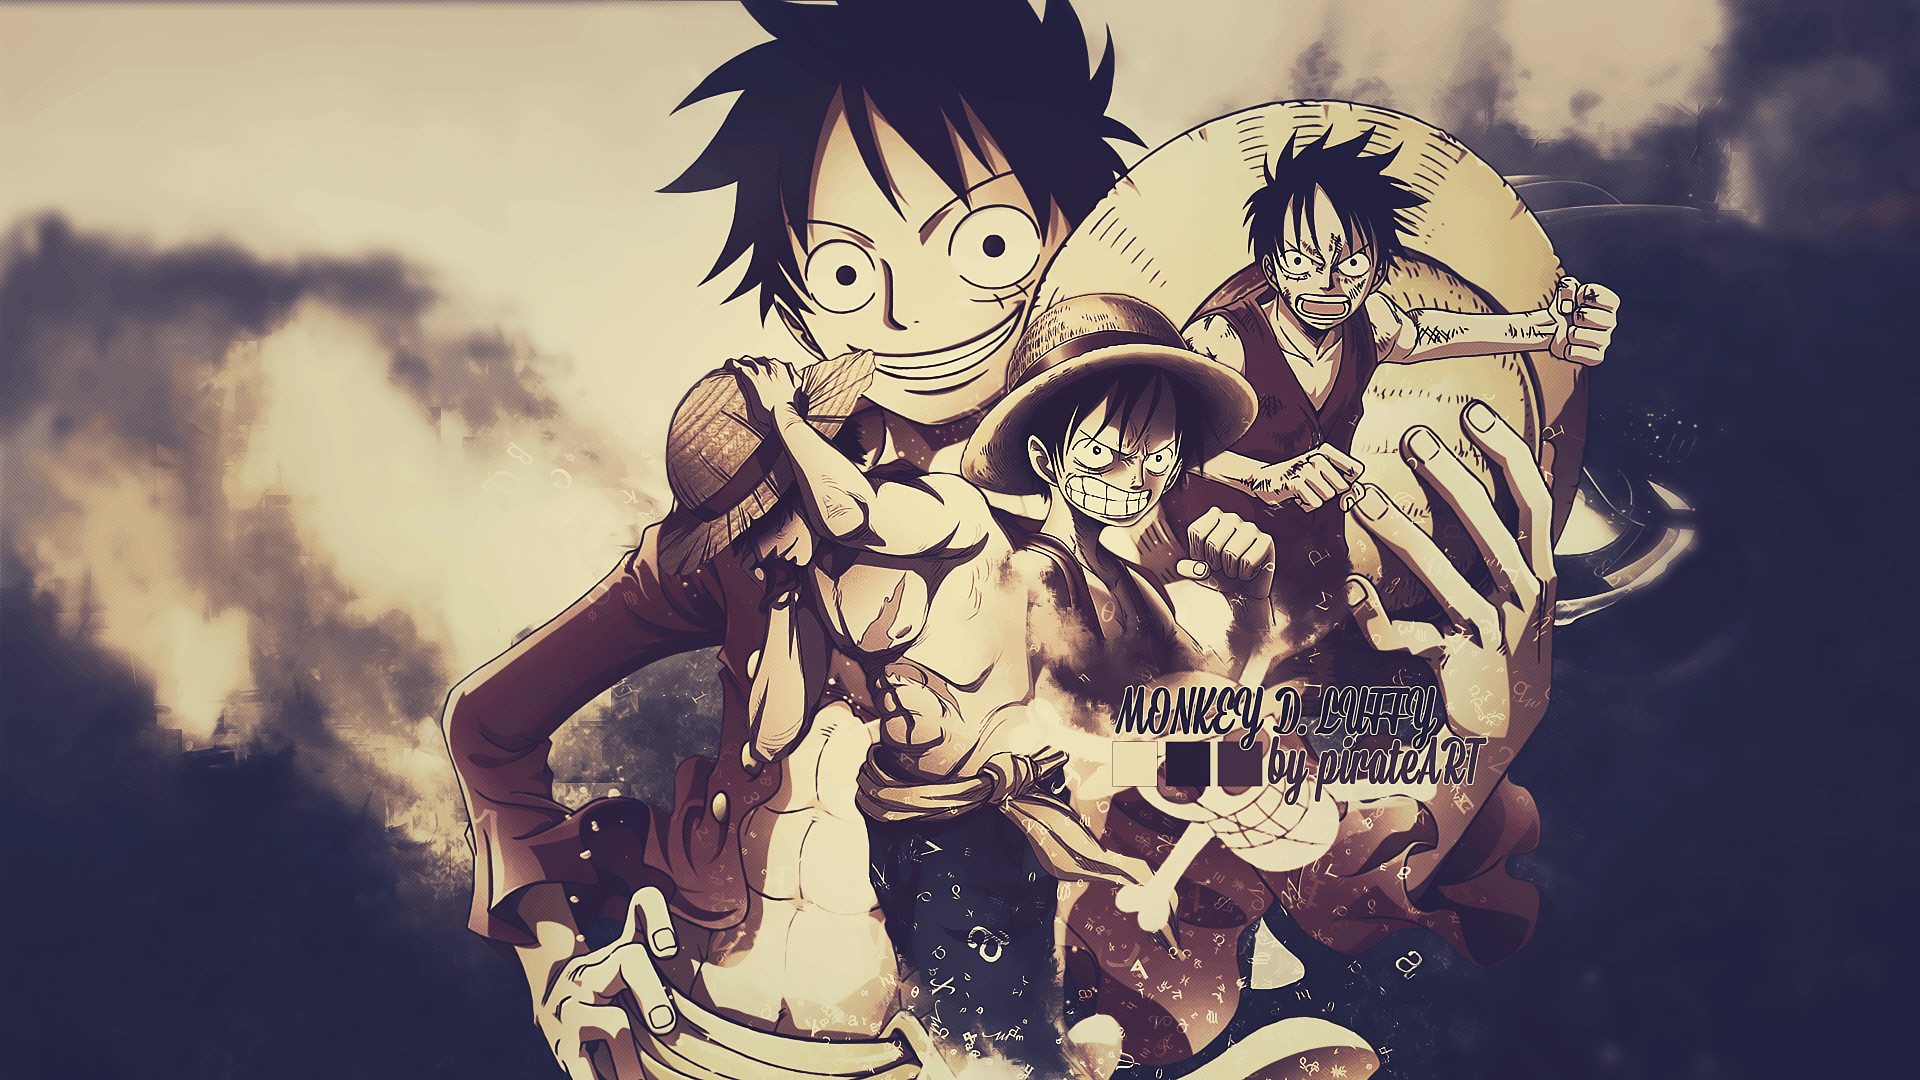 1920x1080 Monkey D Luffy Wallpapers High Quality | Download Free